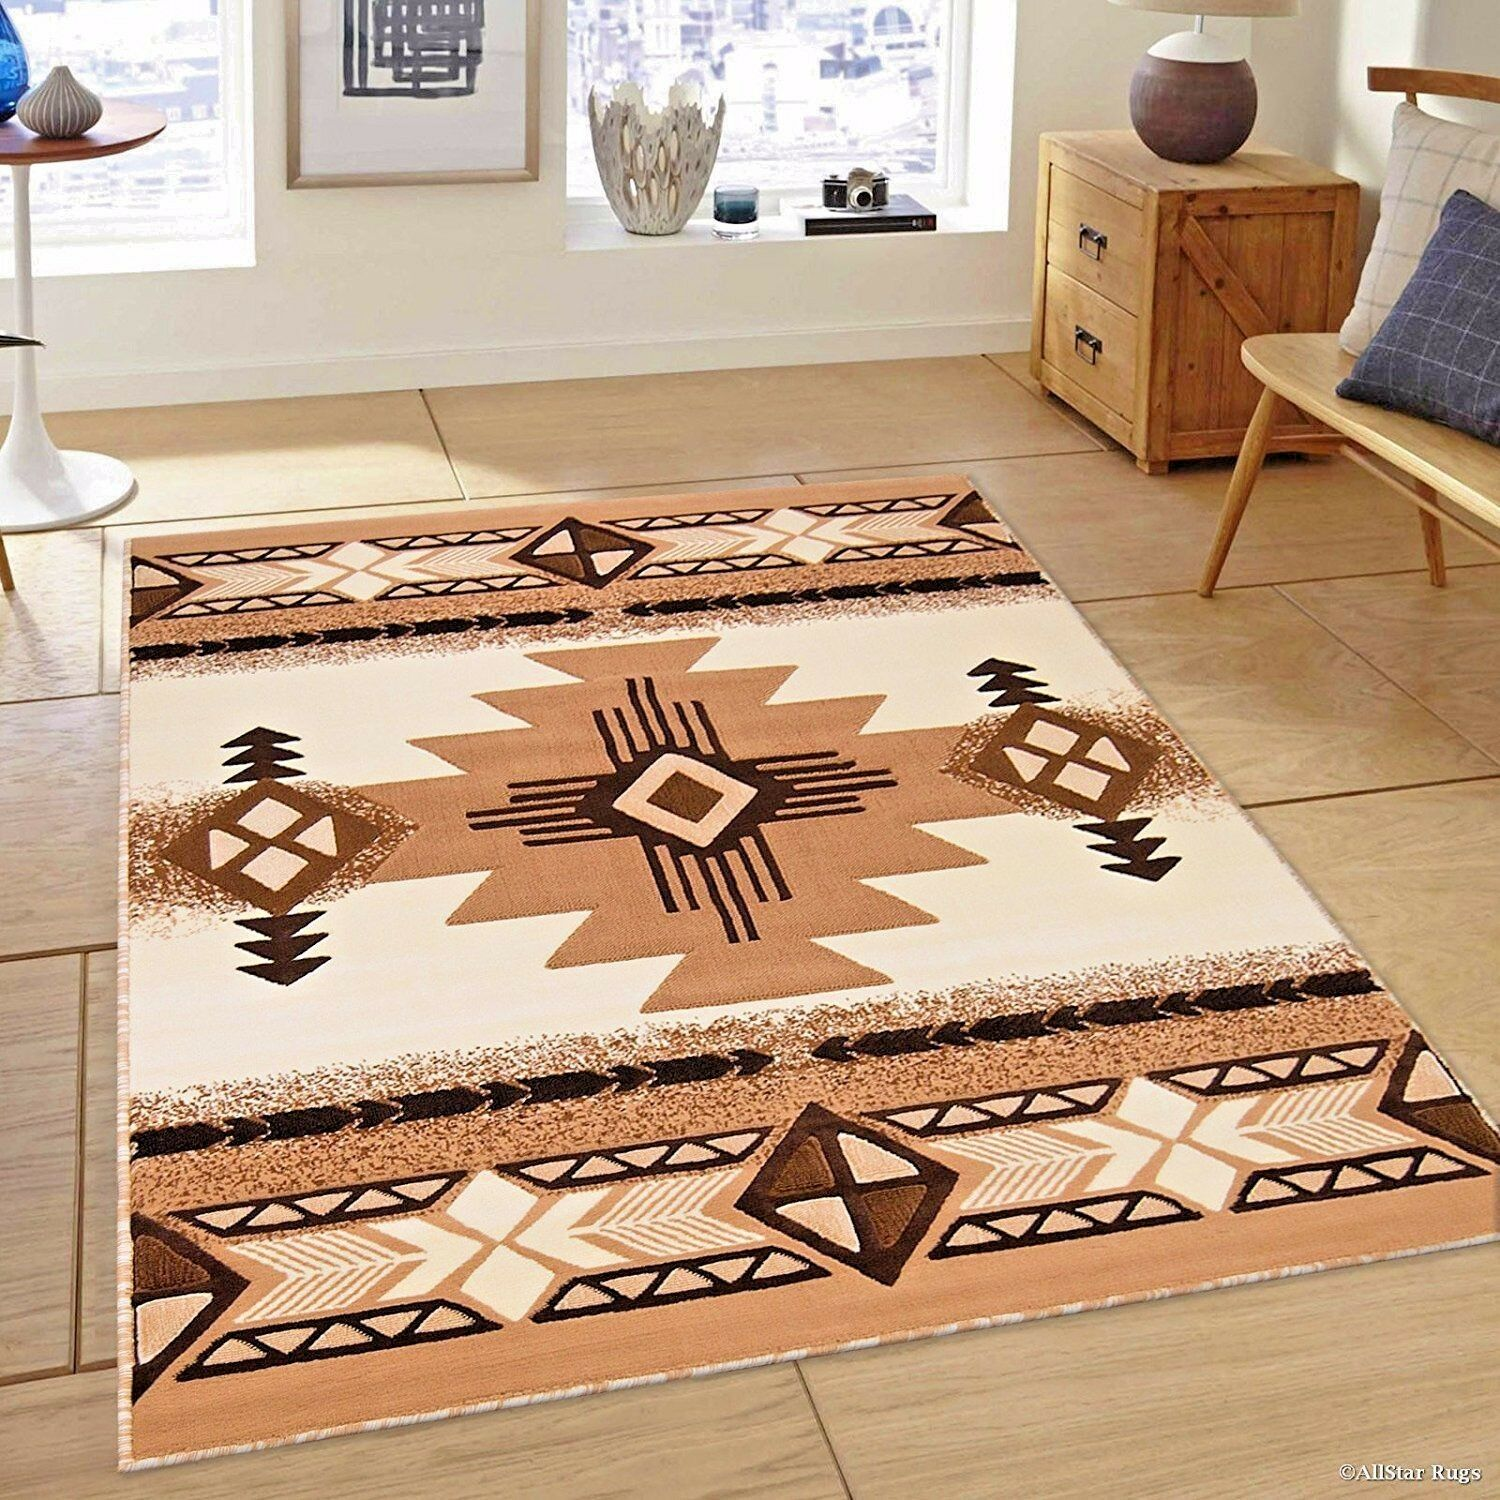 Rugs Area 8x10 Rug Carpets Large Southwestern Native American New 1 Of 10only 4 Available See More